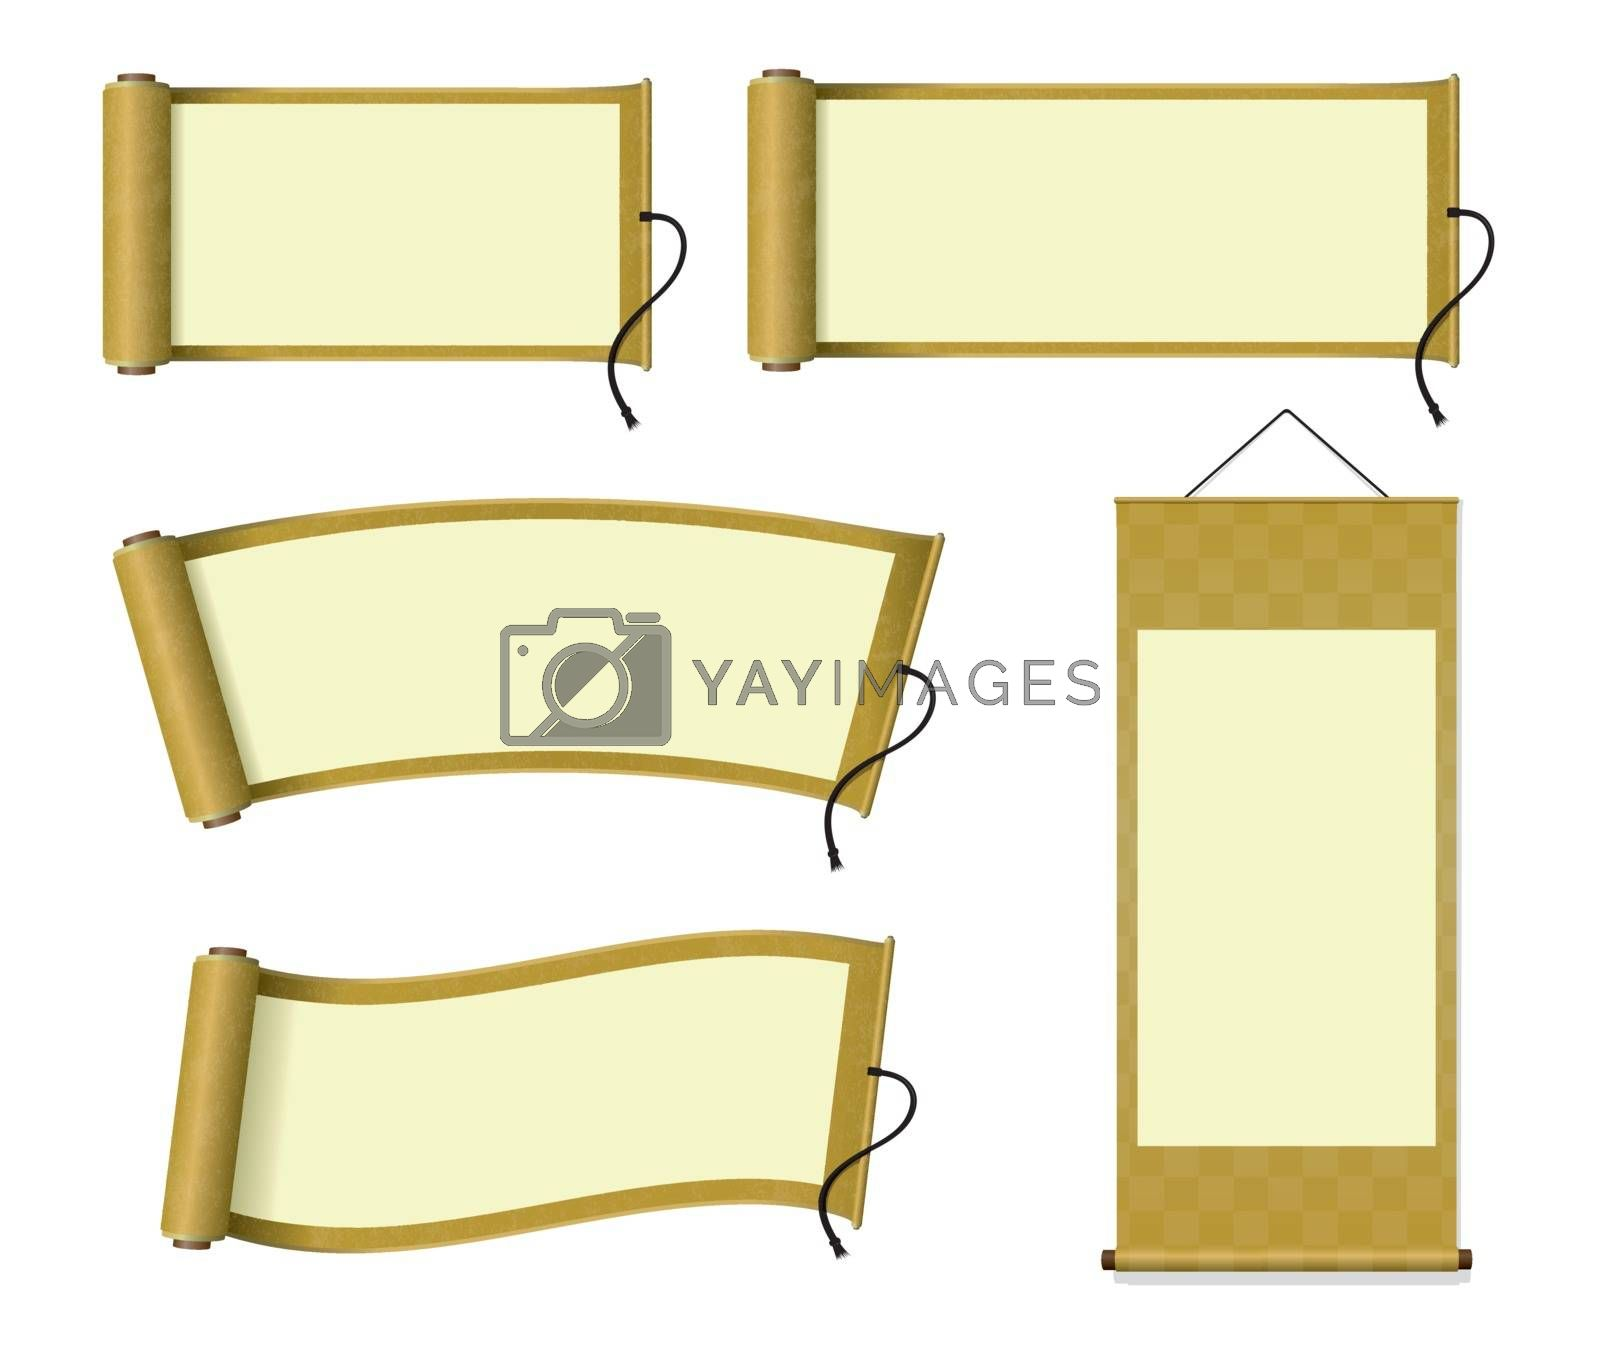 Royalty free image of Japanese scroll paper / hanging scroll illustration set by barks